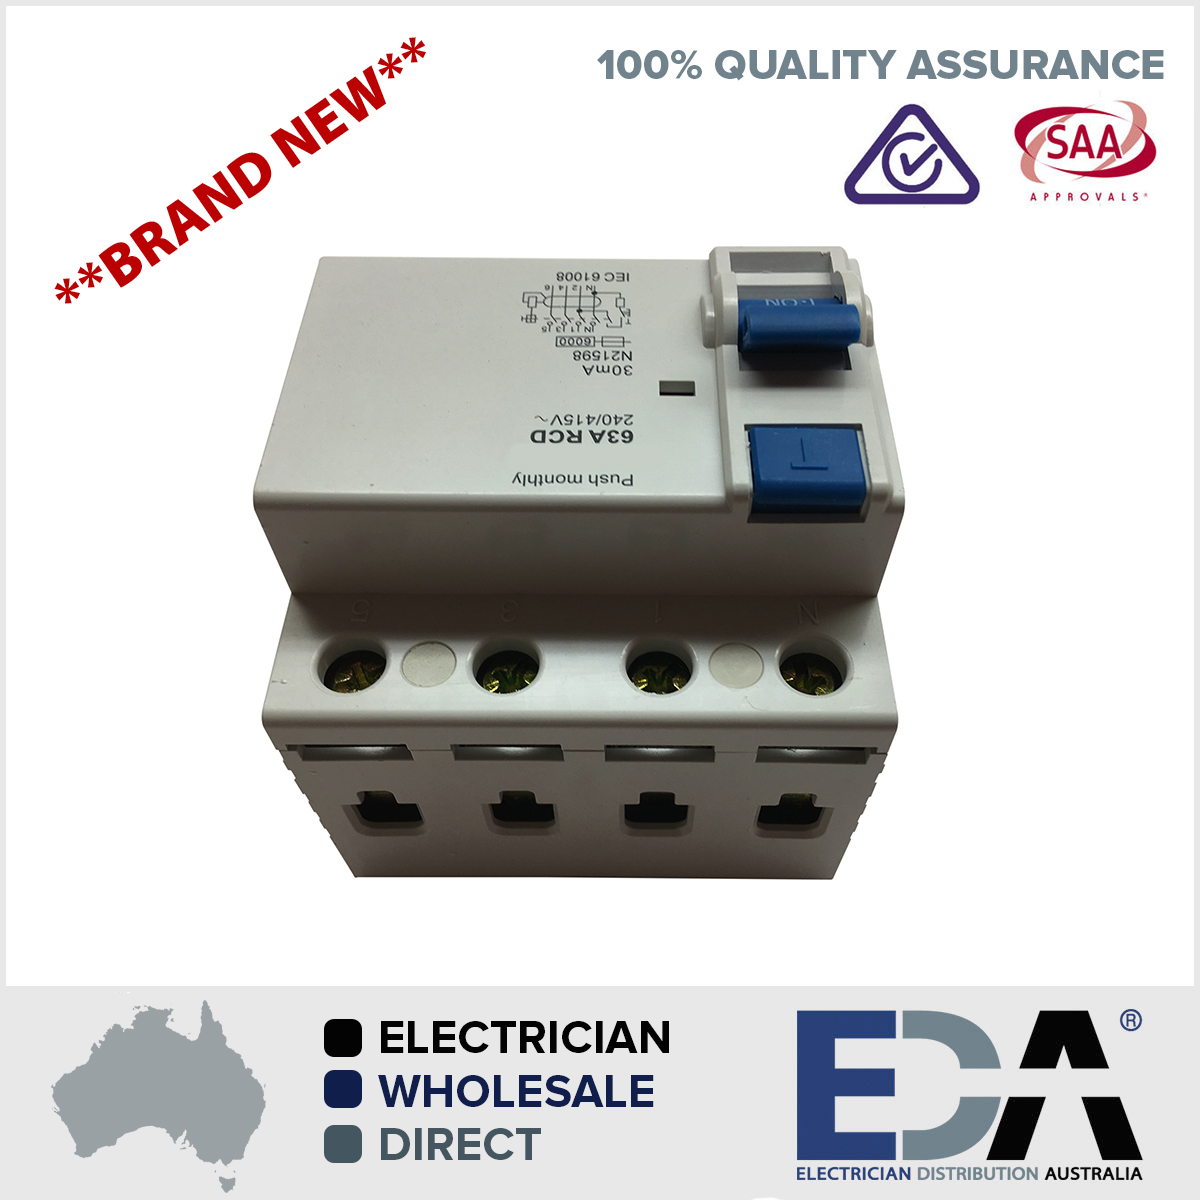 63 amp 4 pole rcd 240415v residual current device safety switch 100 quality assured electrical gear fully tested to australian electrical standards as 3123 5 year warranty all products publicscrutiny Gallery